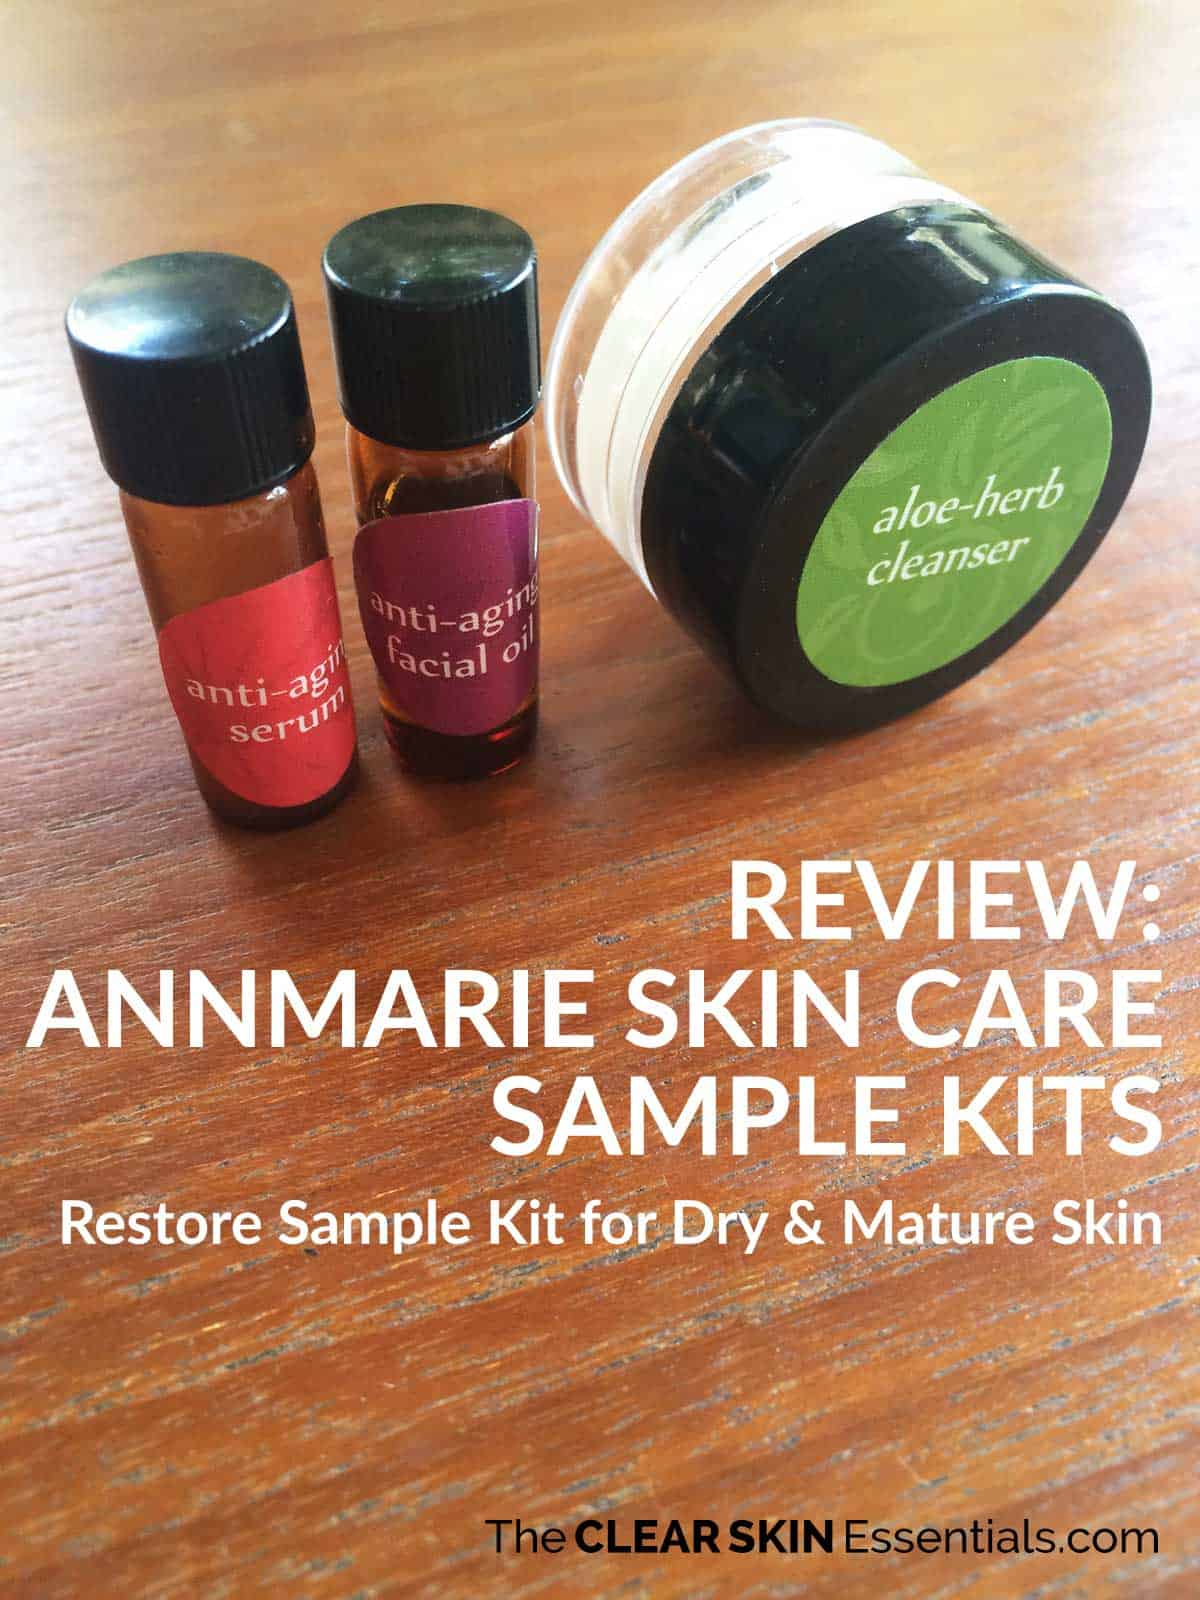 Review of Annmarie Skin Care Sample Kits featuring Aloe Herb Cleanser, Anti-Aging Facial Oil, and Anti-Aging Serum